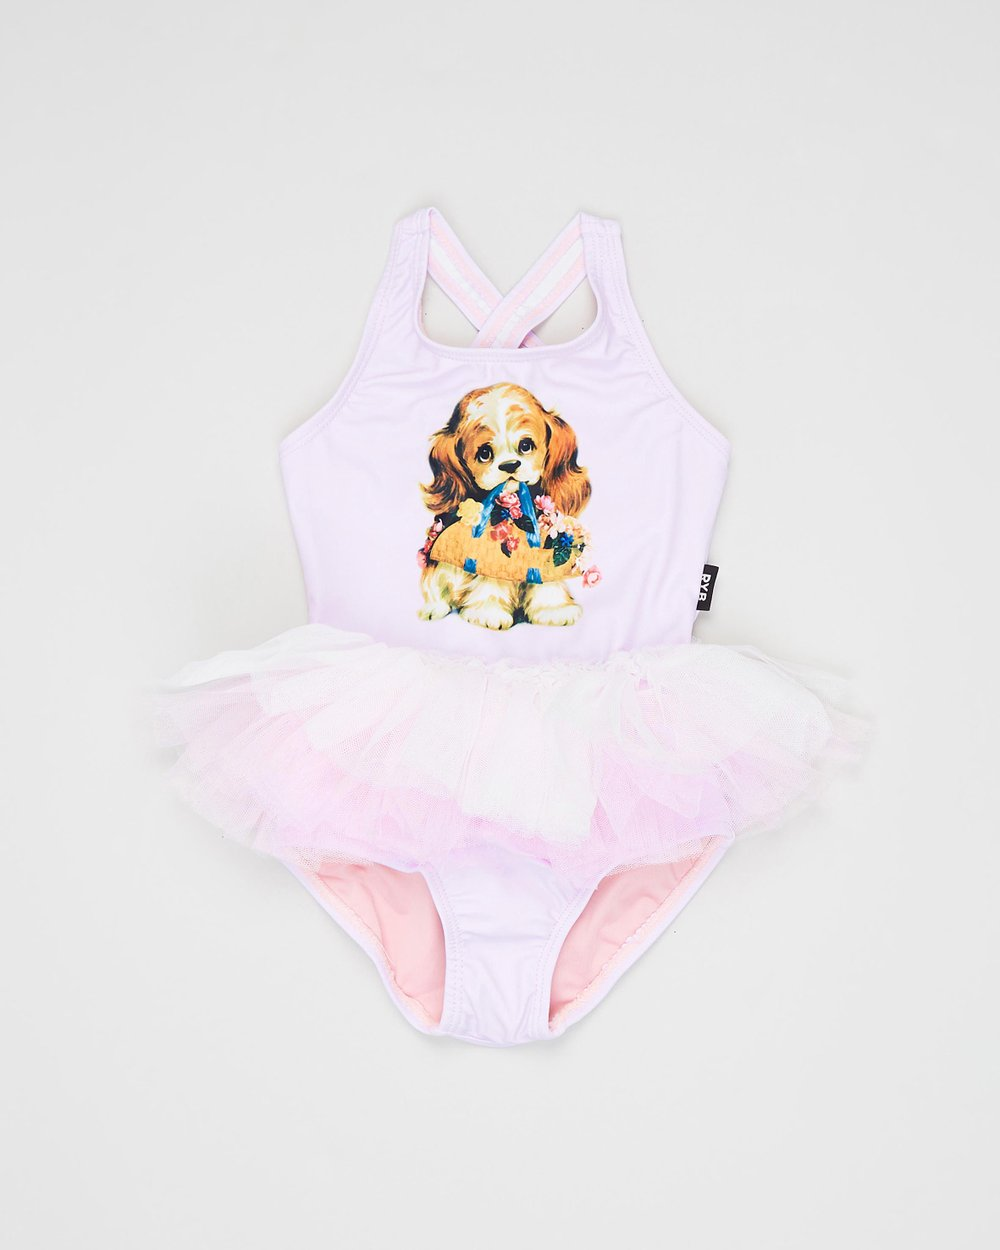 ae041cf2b966c Go Fetch Tulle One-Piece - Babies by Rock Your Baby Online | THE ICONIC |  Australia